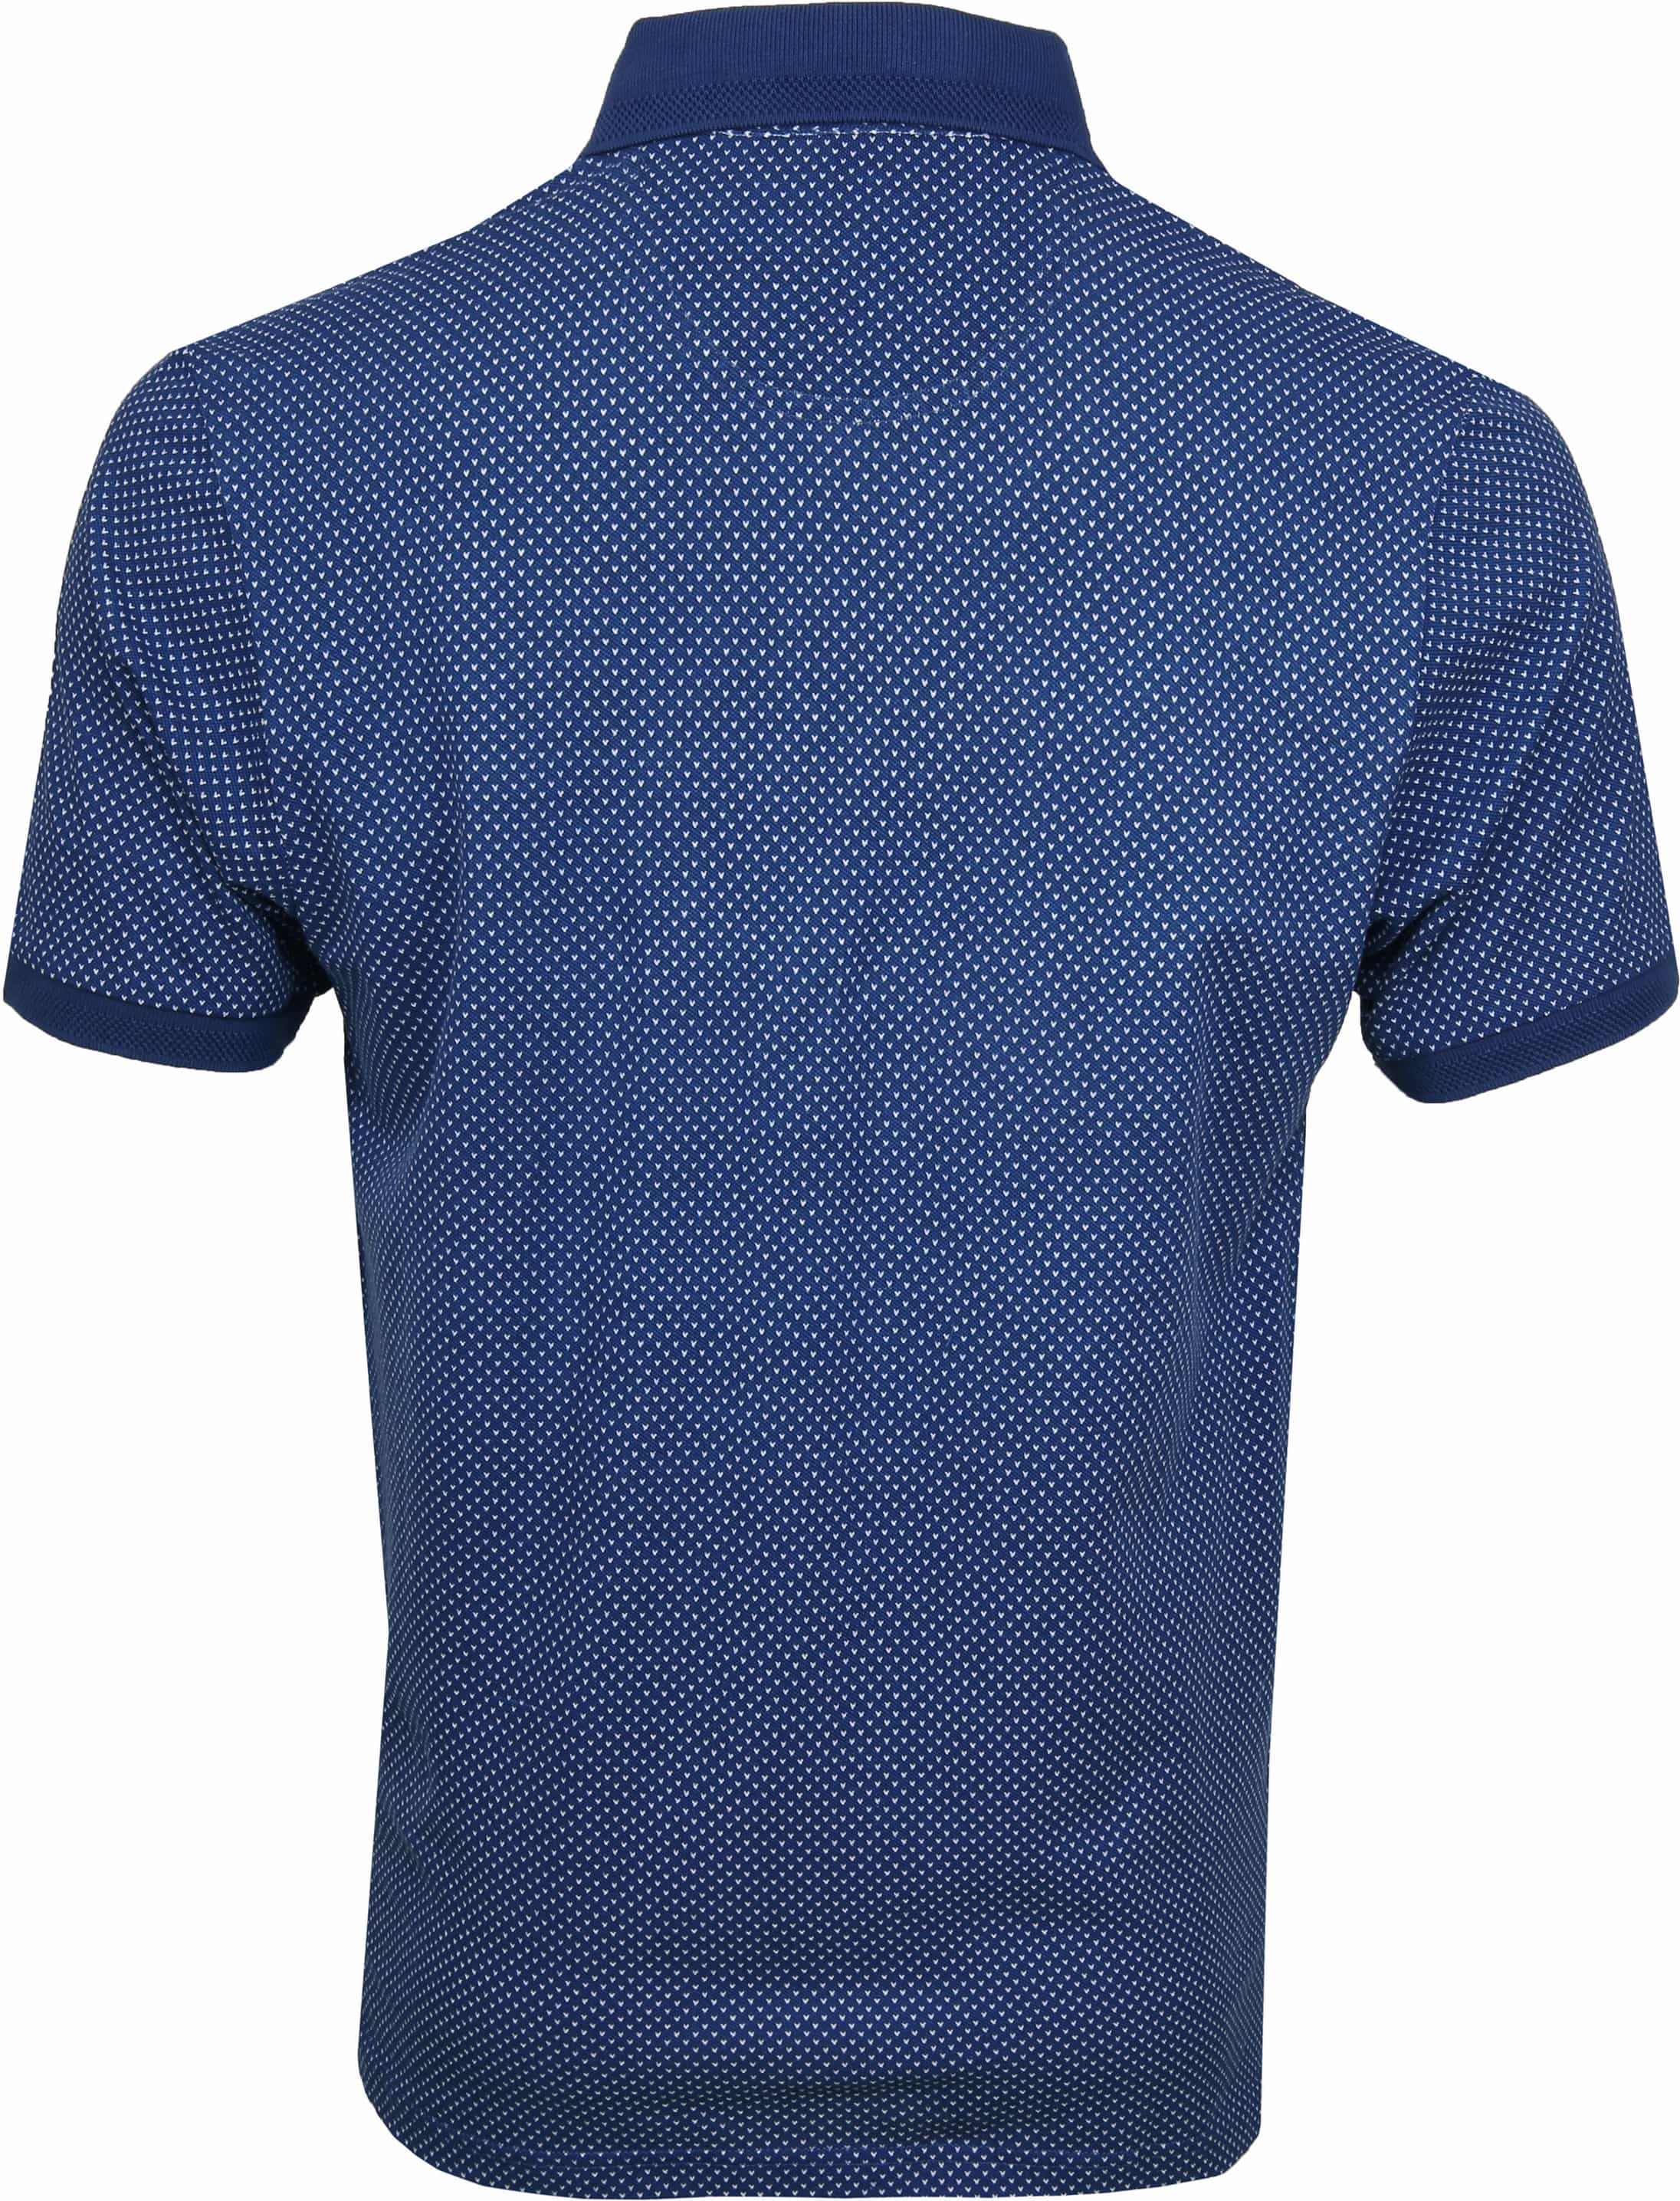 Suitable Till Poloshirt Dessin Blue foto 3